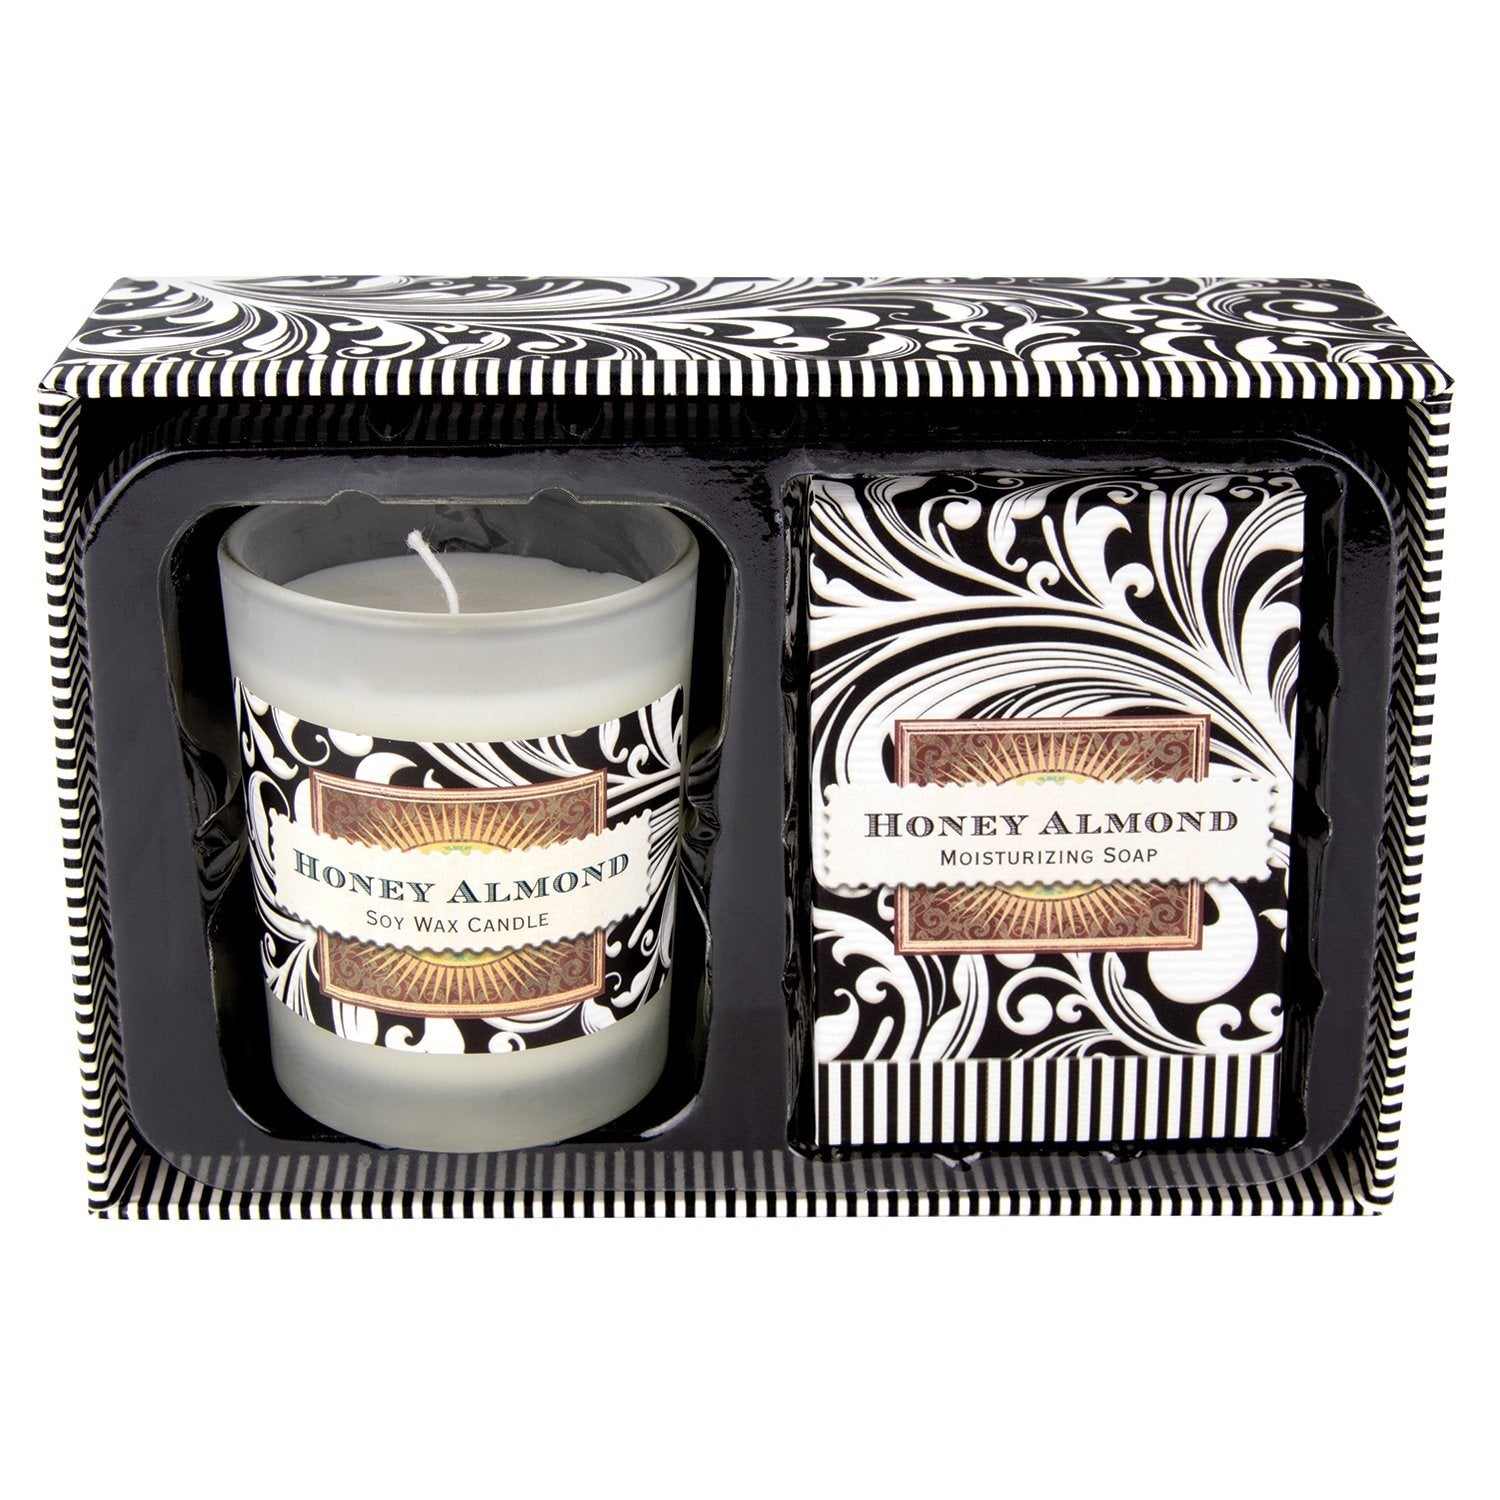 HONEY ALMOND CANDLE AND SOAP GIFT SET CSS182 - Molly's! A Chic and Unique Boutique